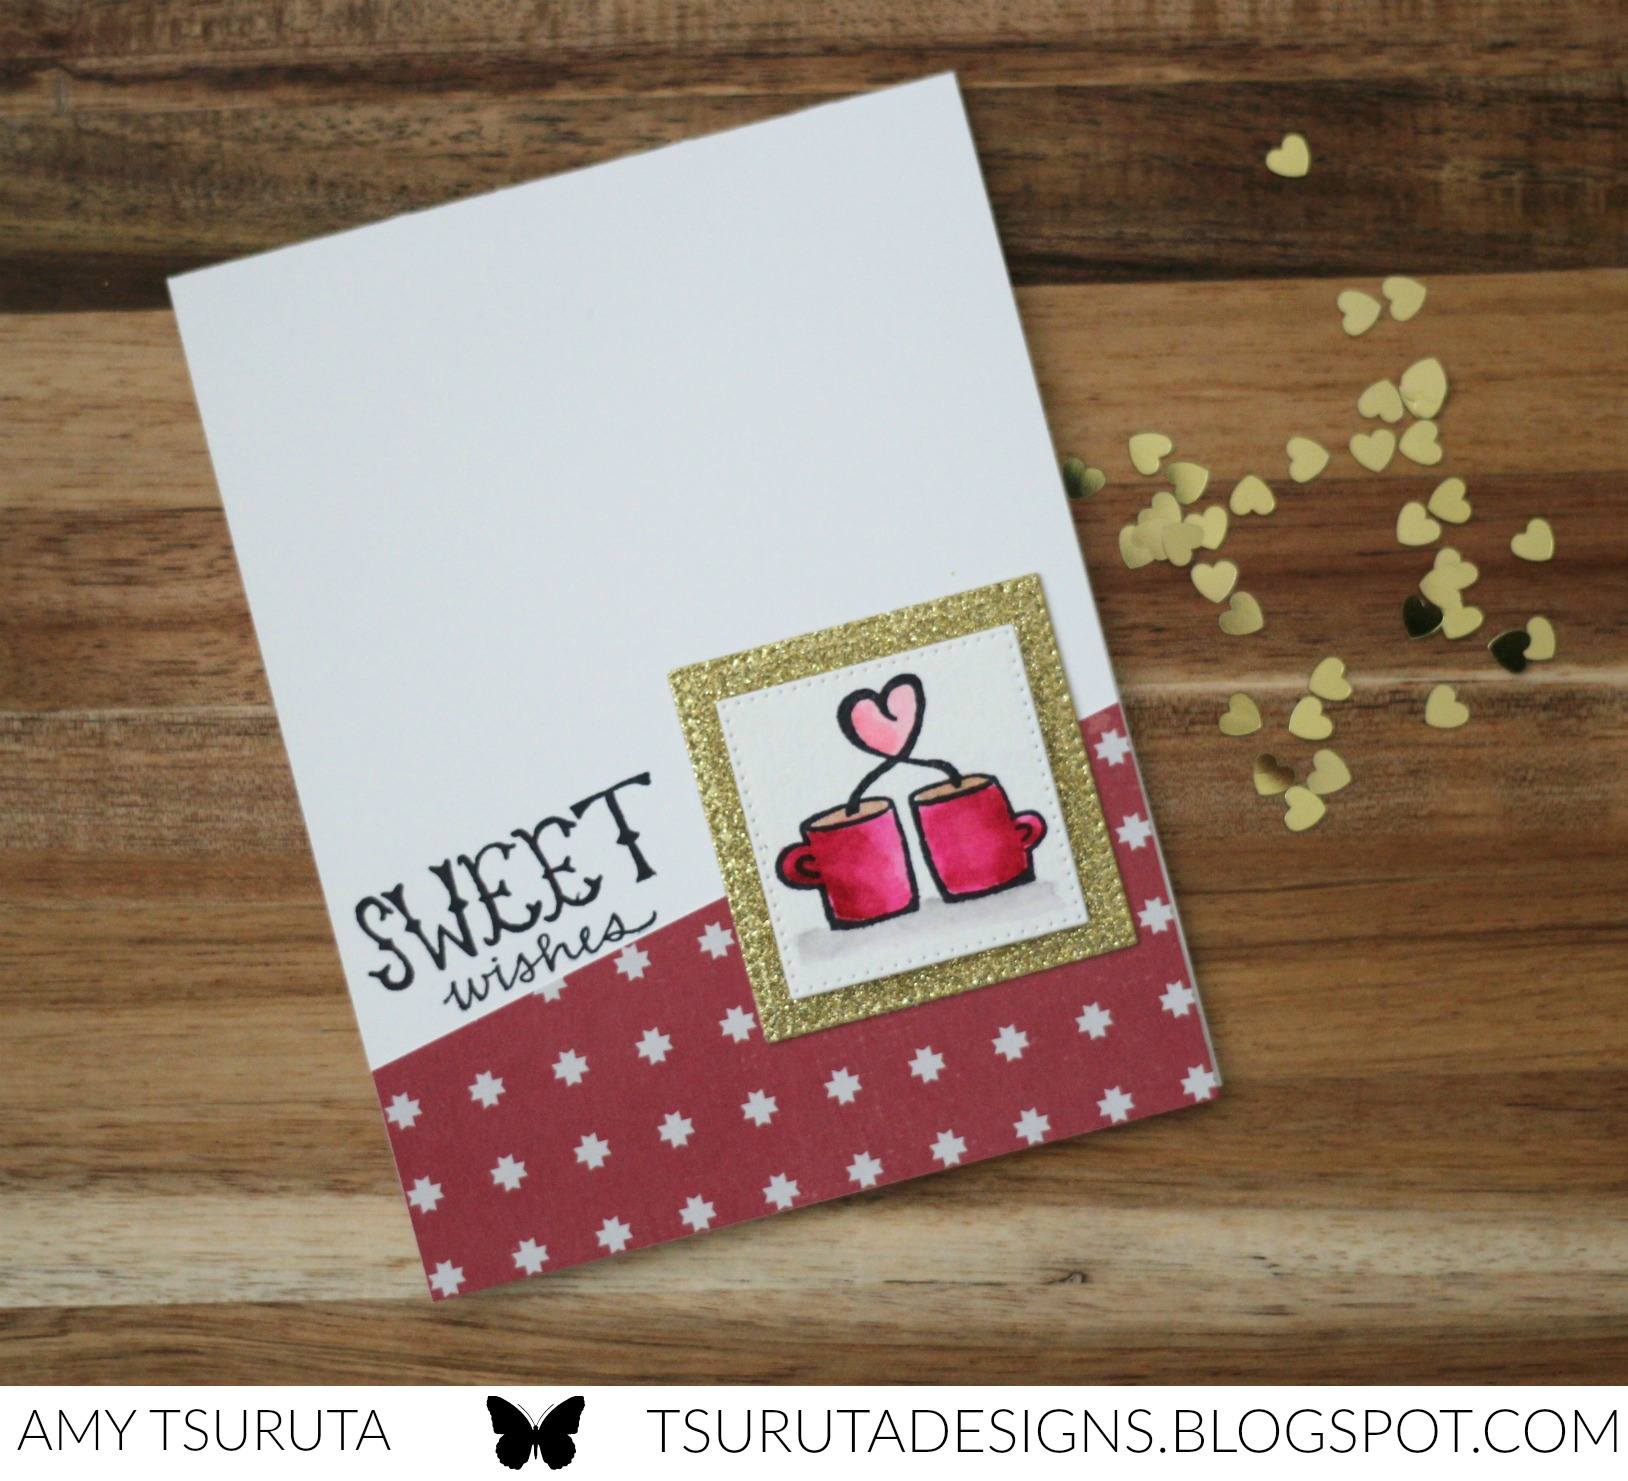 Sweet Wishes by Amy Tsuruta for Savvy stamps